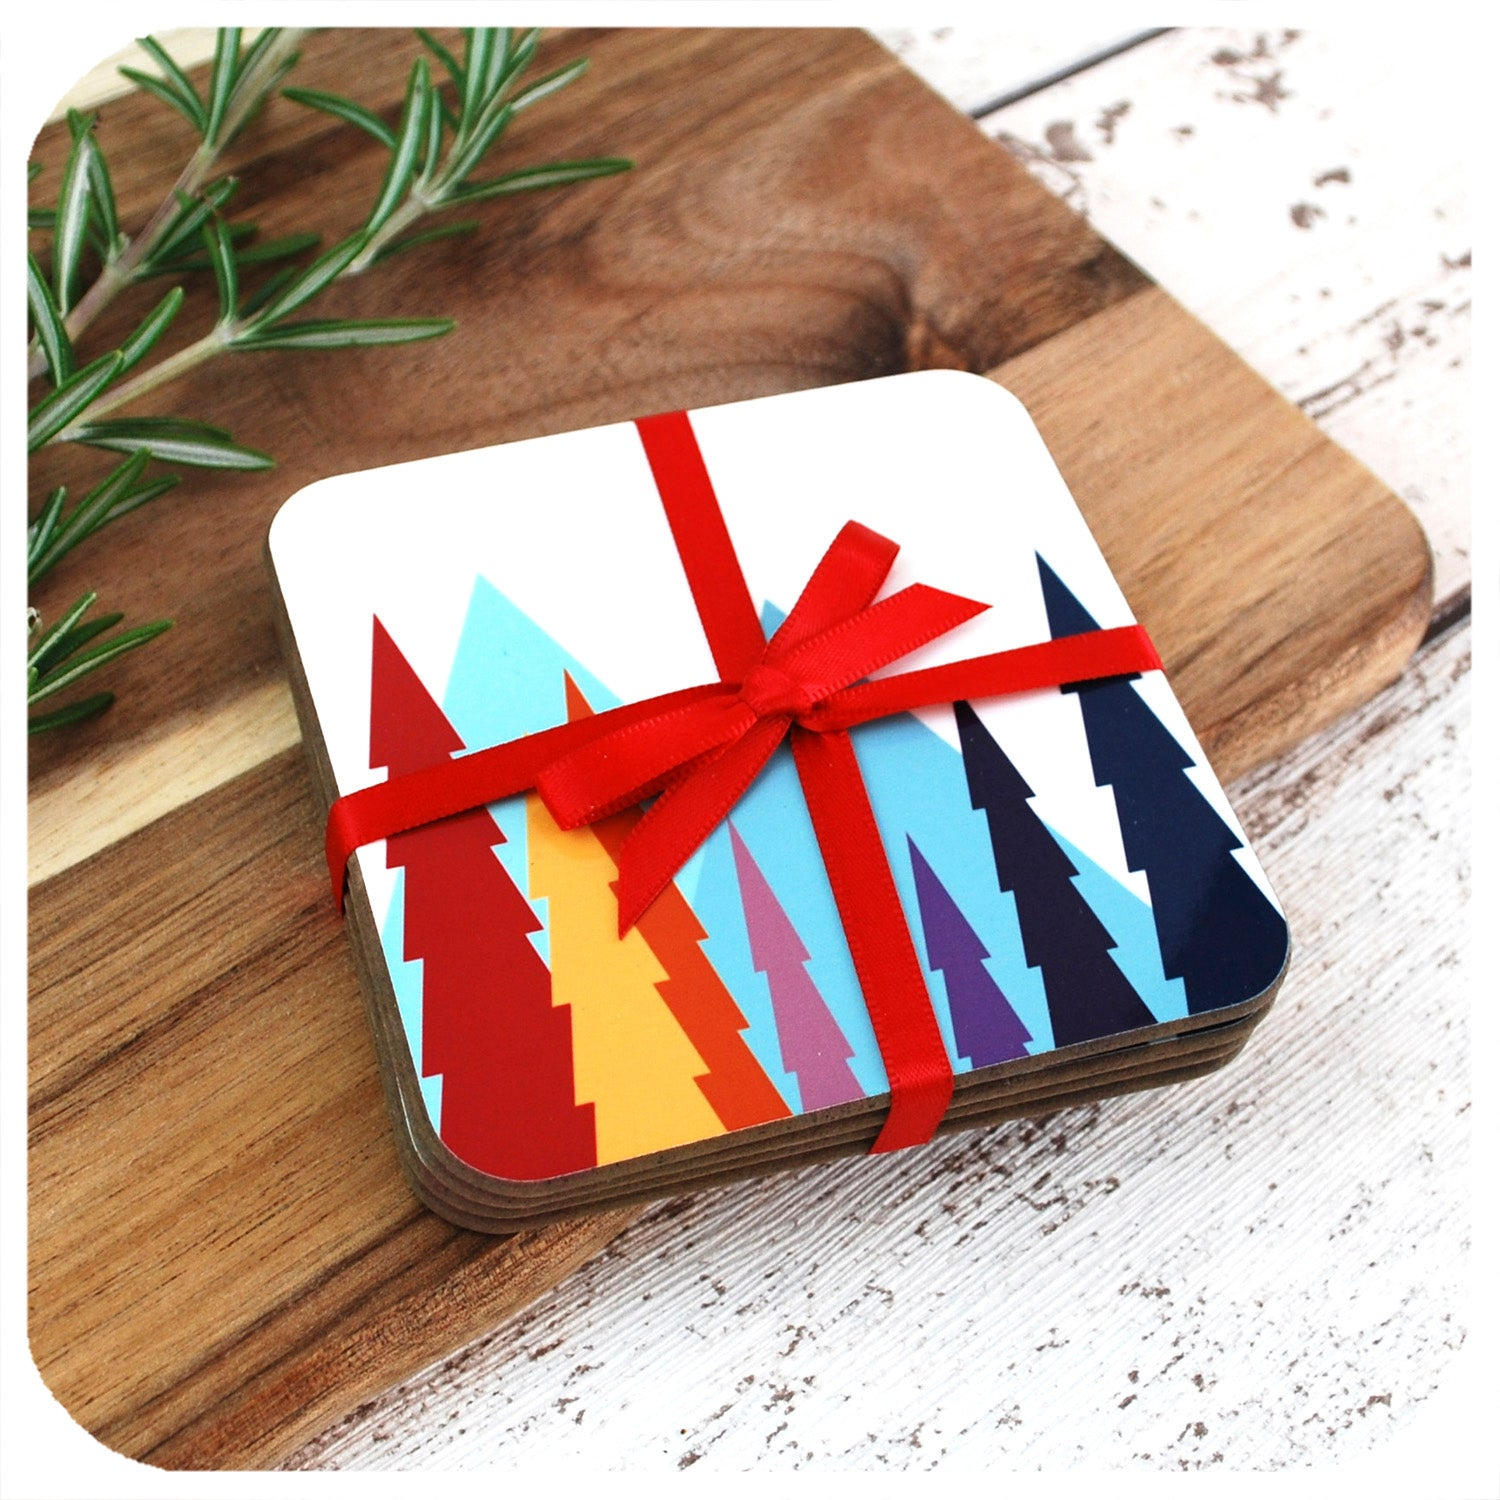 Nordic Trees Coasters, wrapped in red ribbon | The Inkabilly Emporium